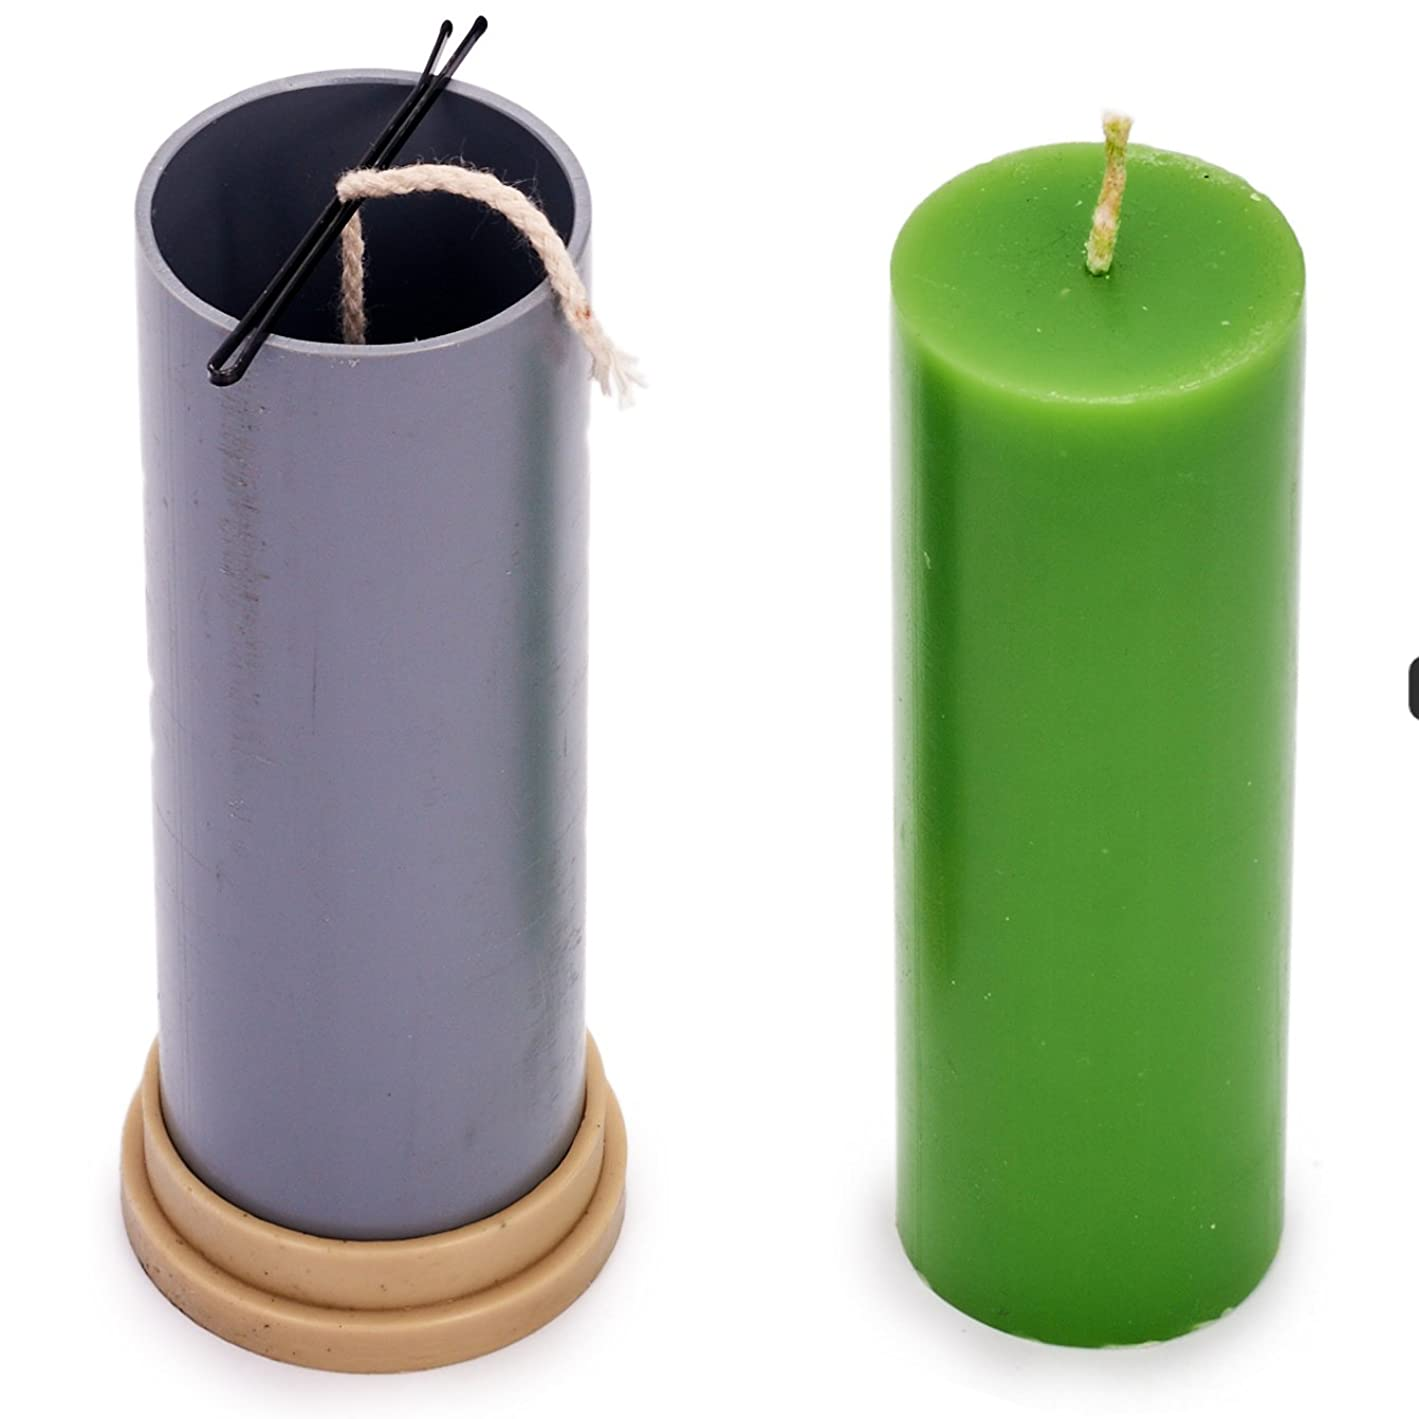 Сylinder Mold - Height: 5.1 in, Width: 1.9 in - 30 ft. of Wick Included as a Gift - Plastic Candle molds for Making Candles p26629691167103